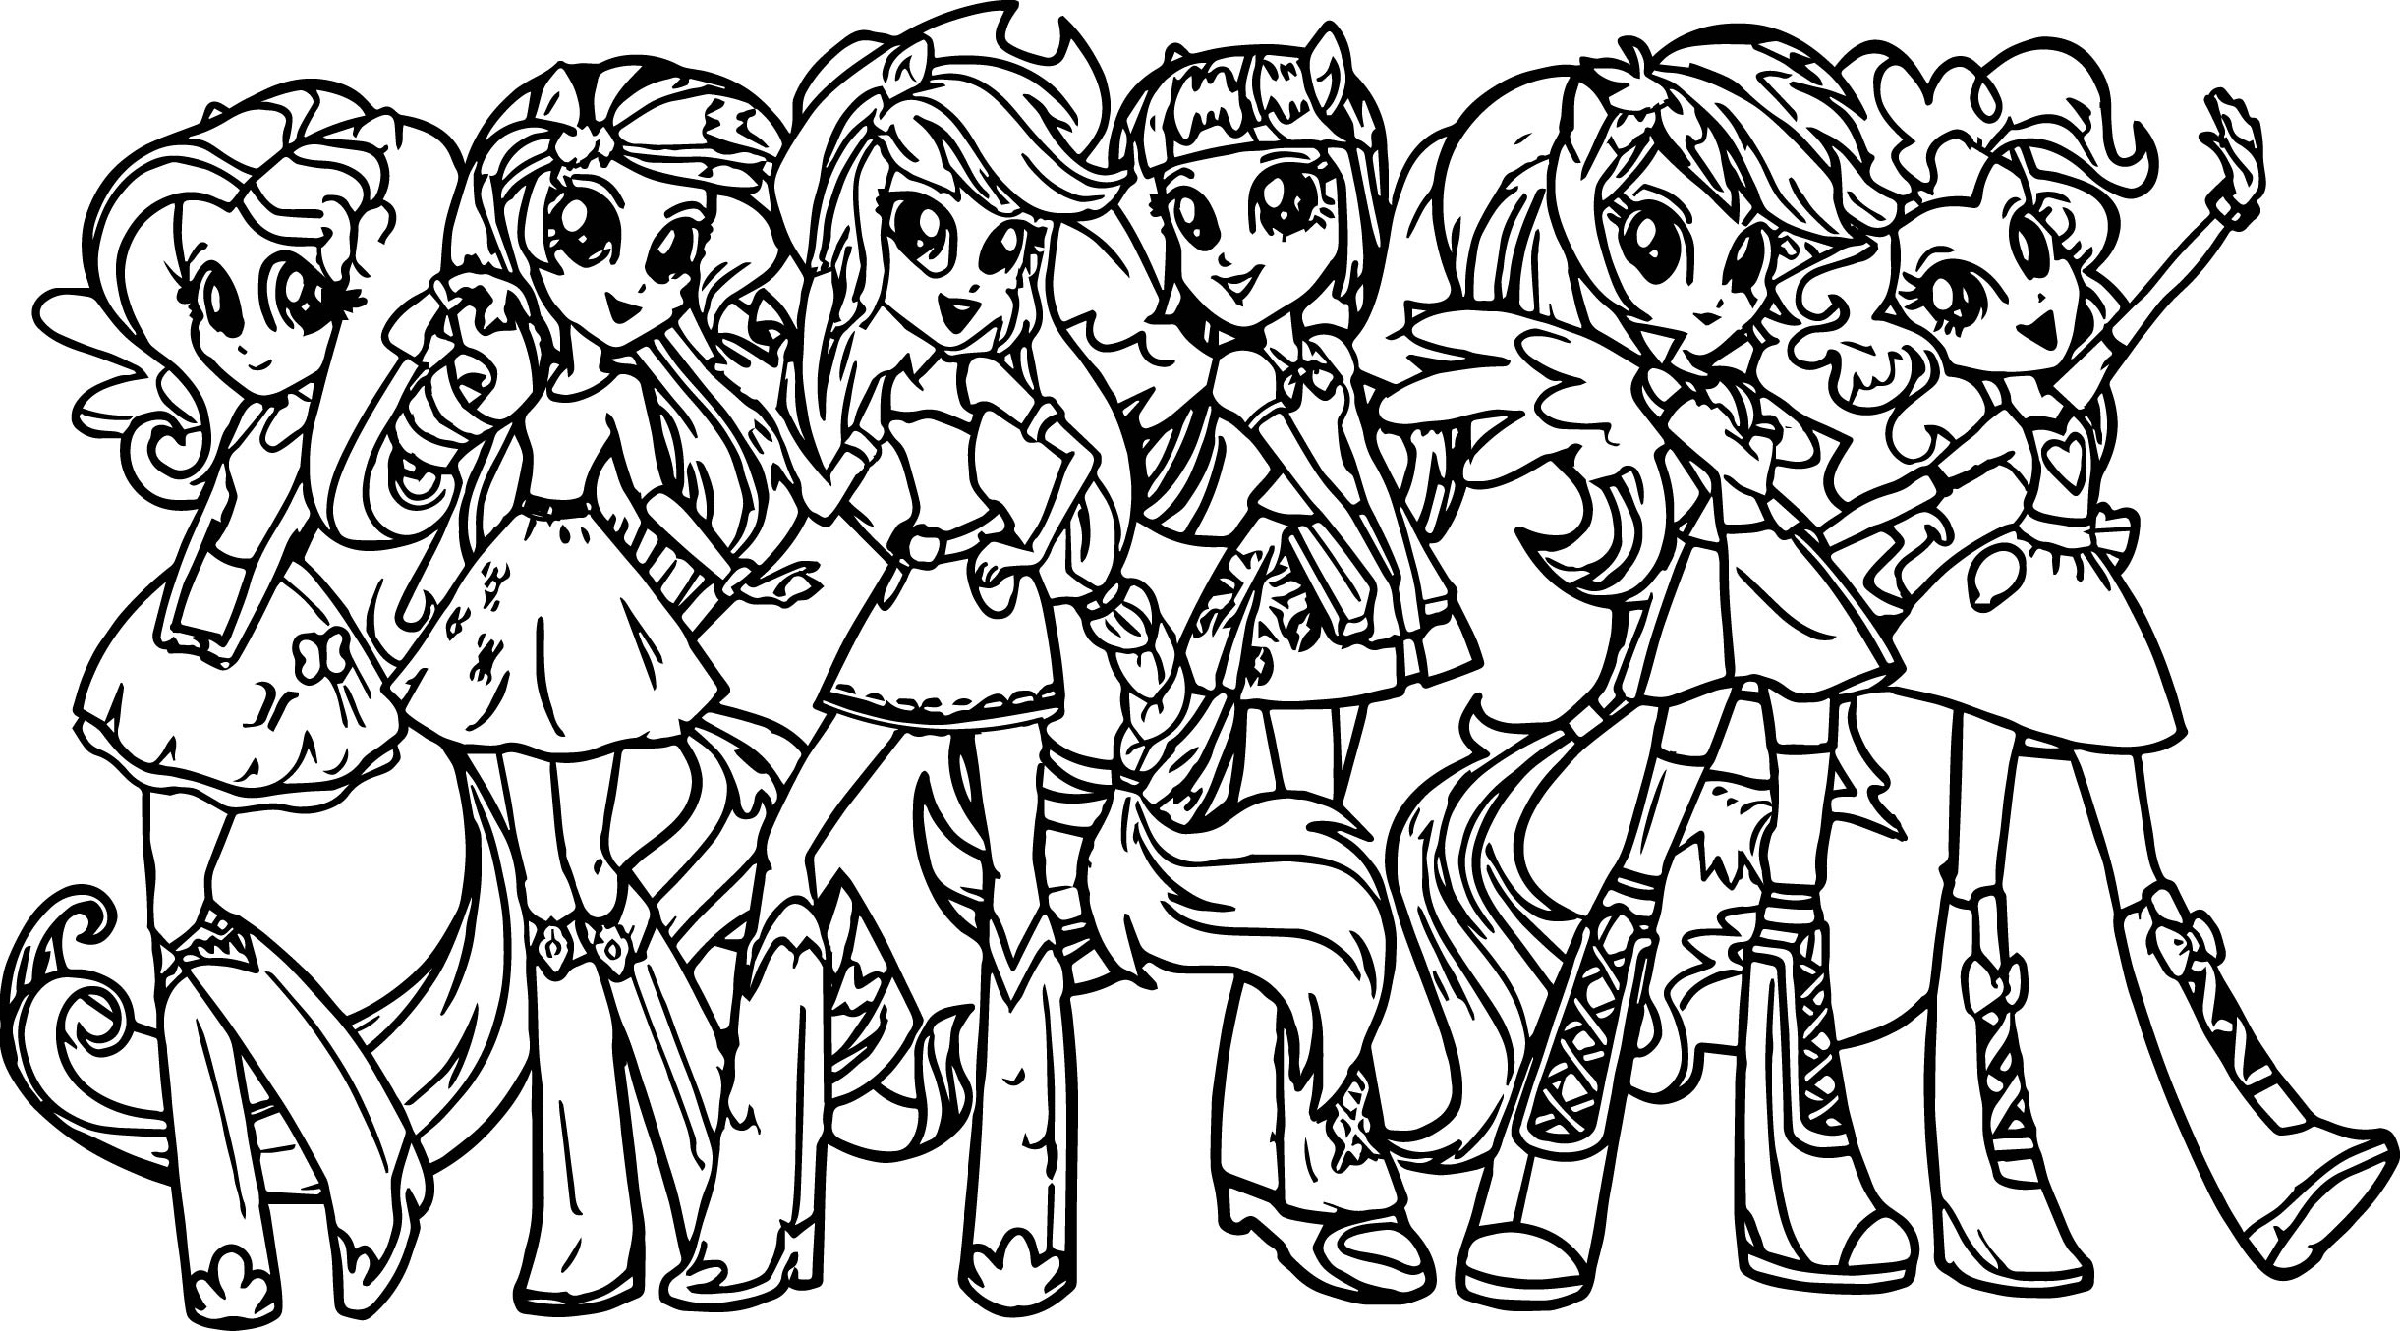 My Little Pony Coloring Pages For Pony Lovers | Educative ...